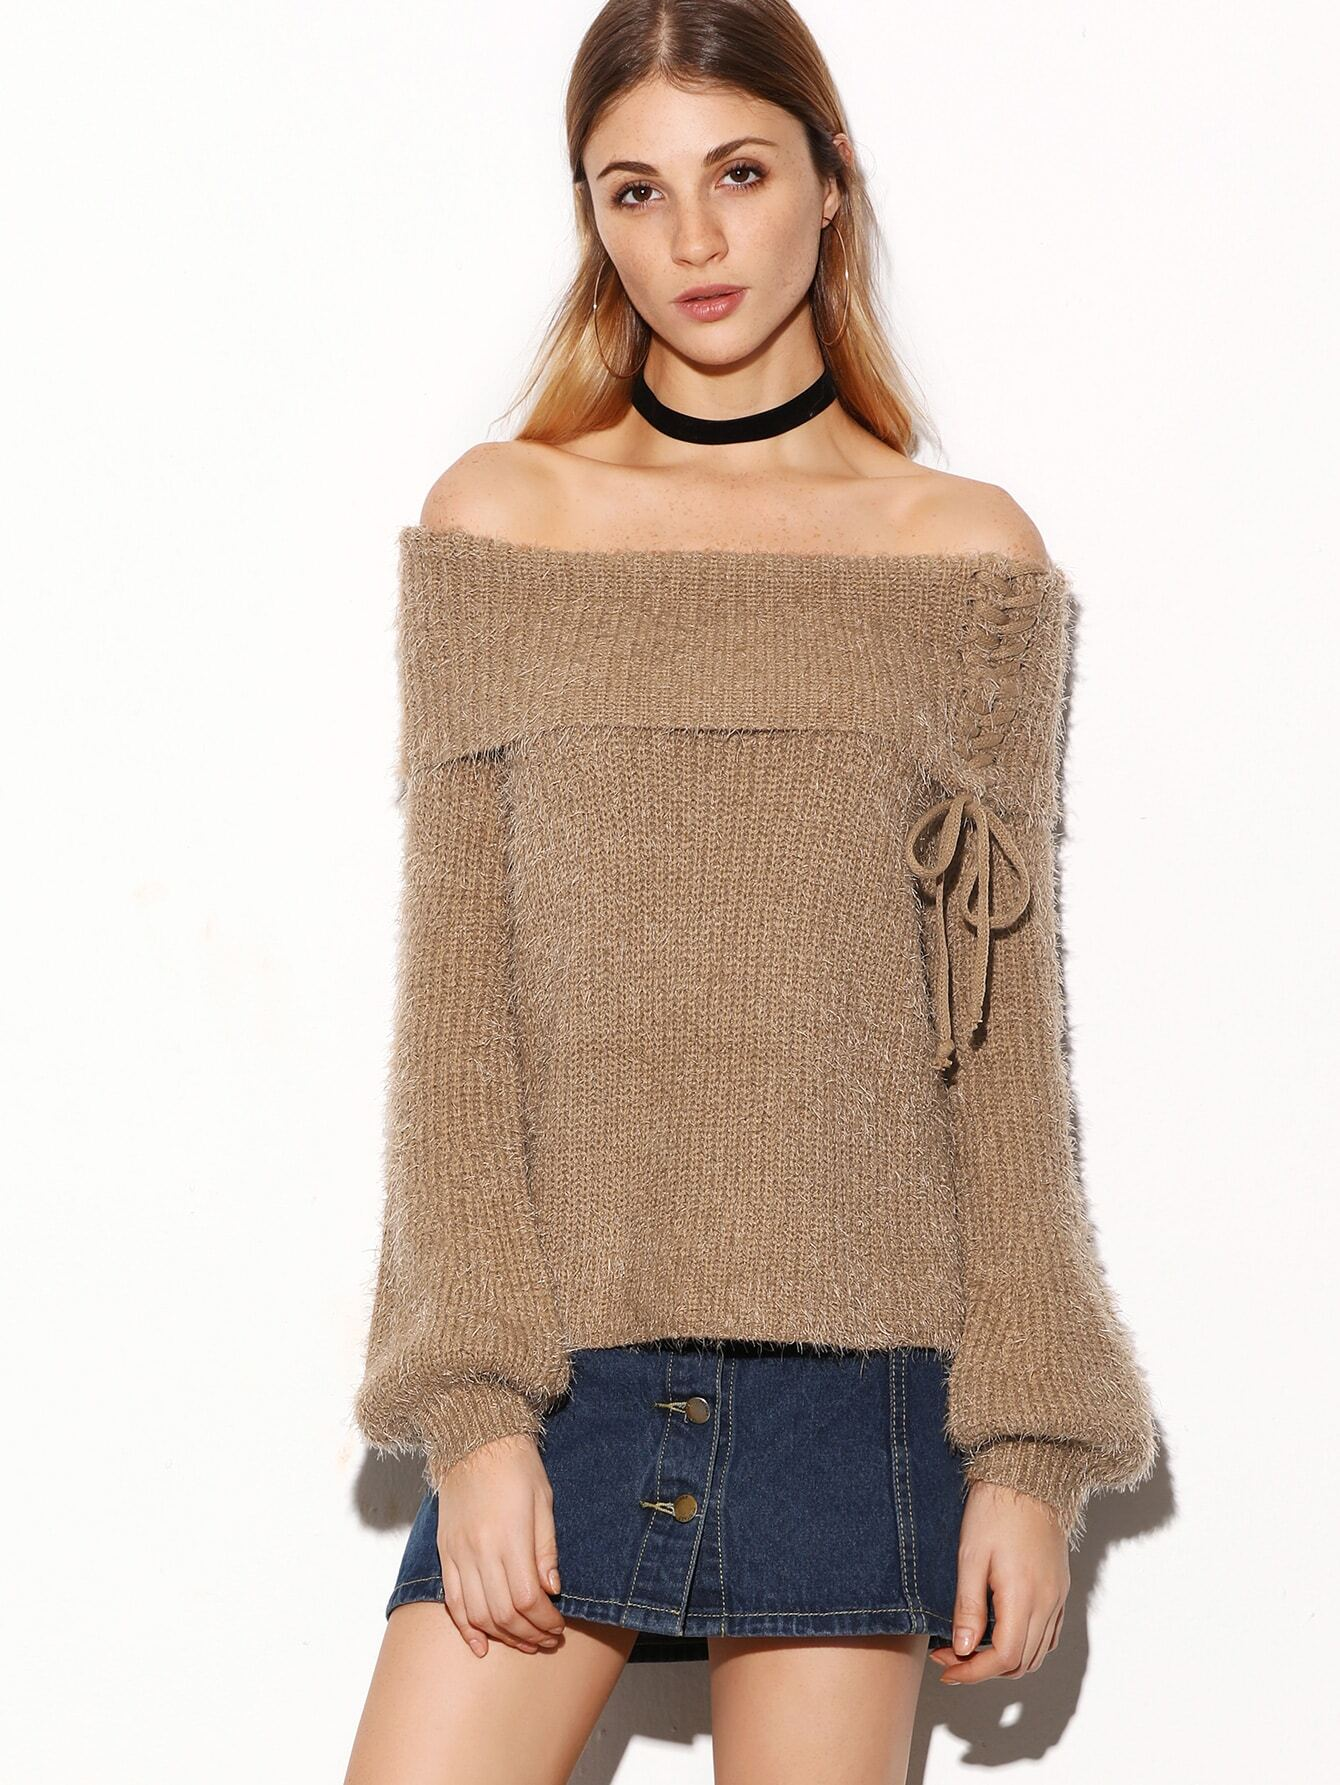 Off The Shoulder Lace Up Foldover Fuzzy Sweater sweater161102101